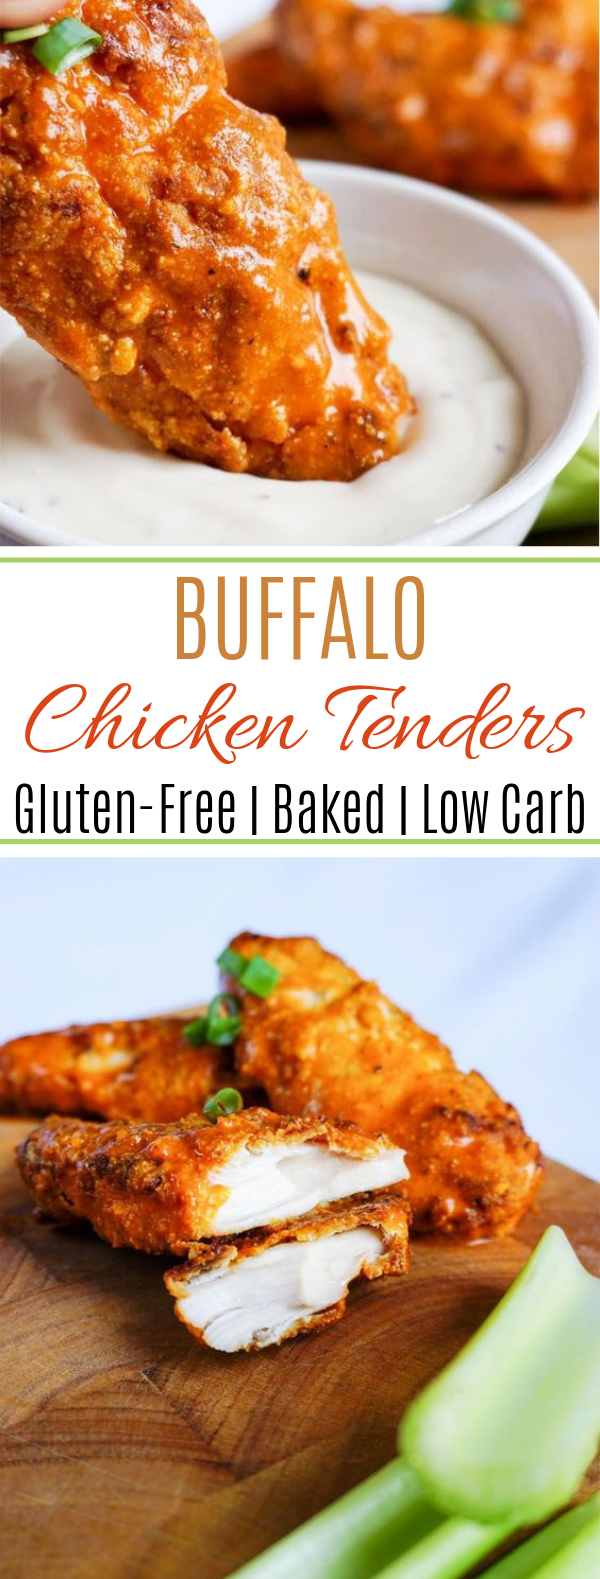 Buffalo Keto Chicken Tenders #diet #lowcarb